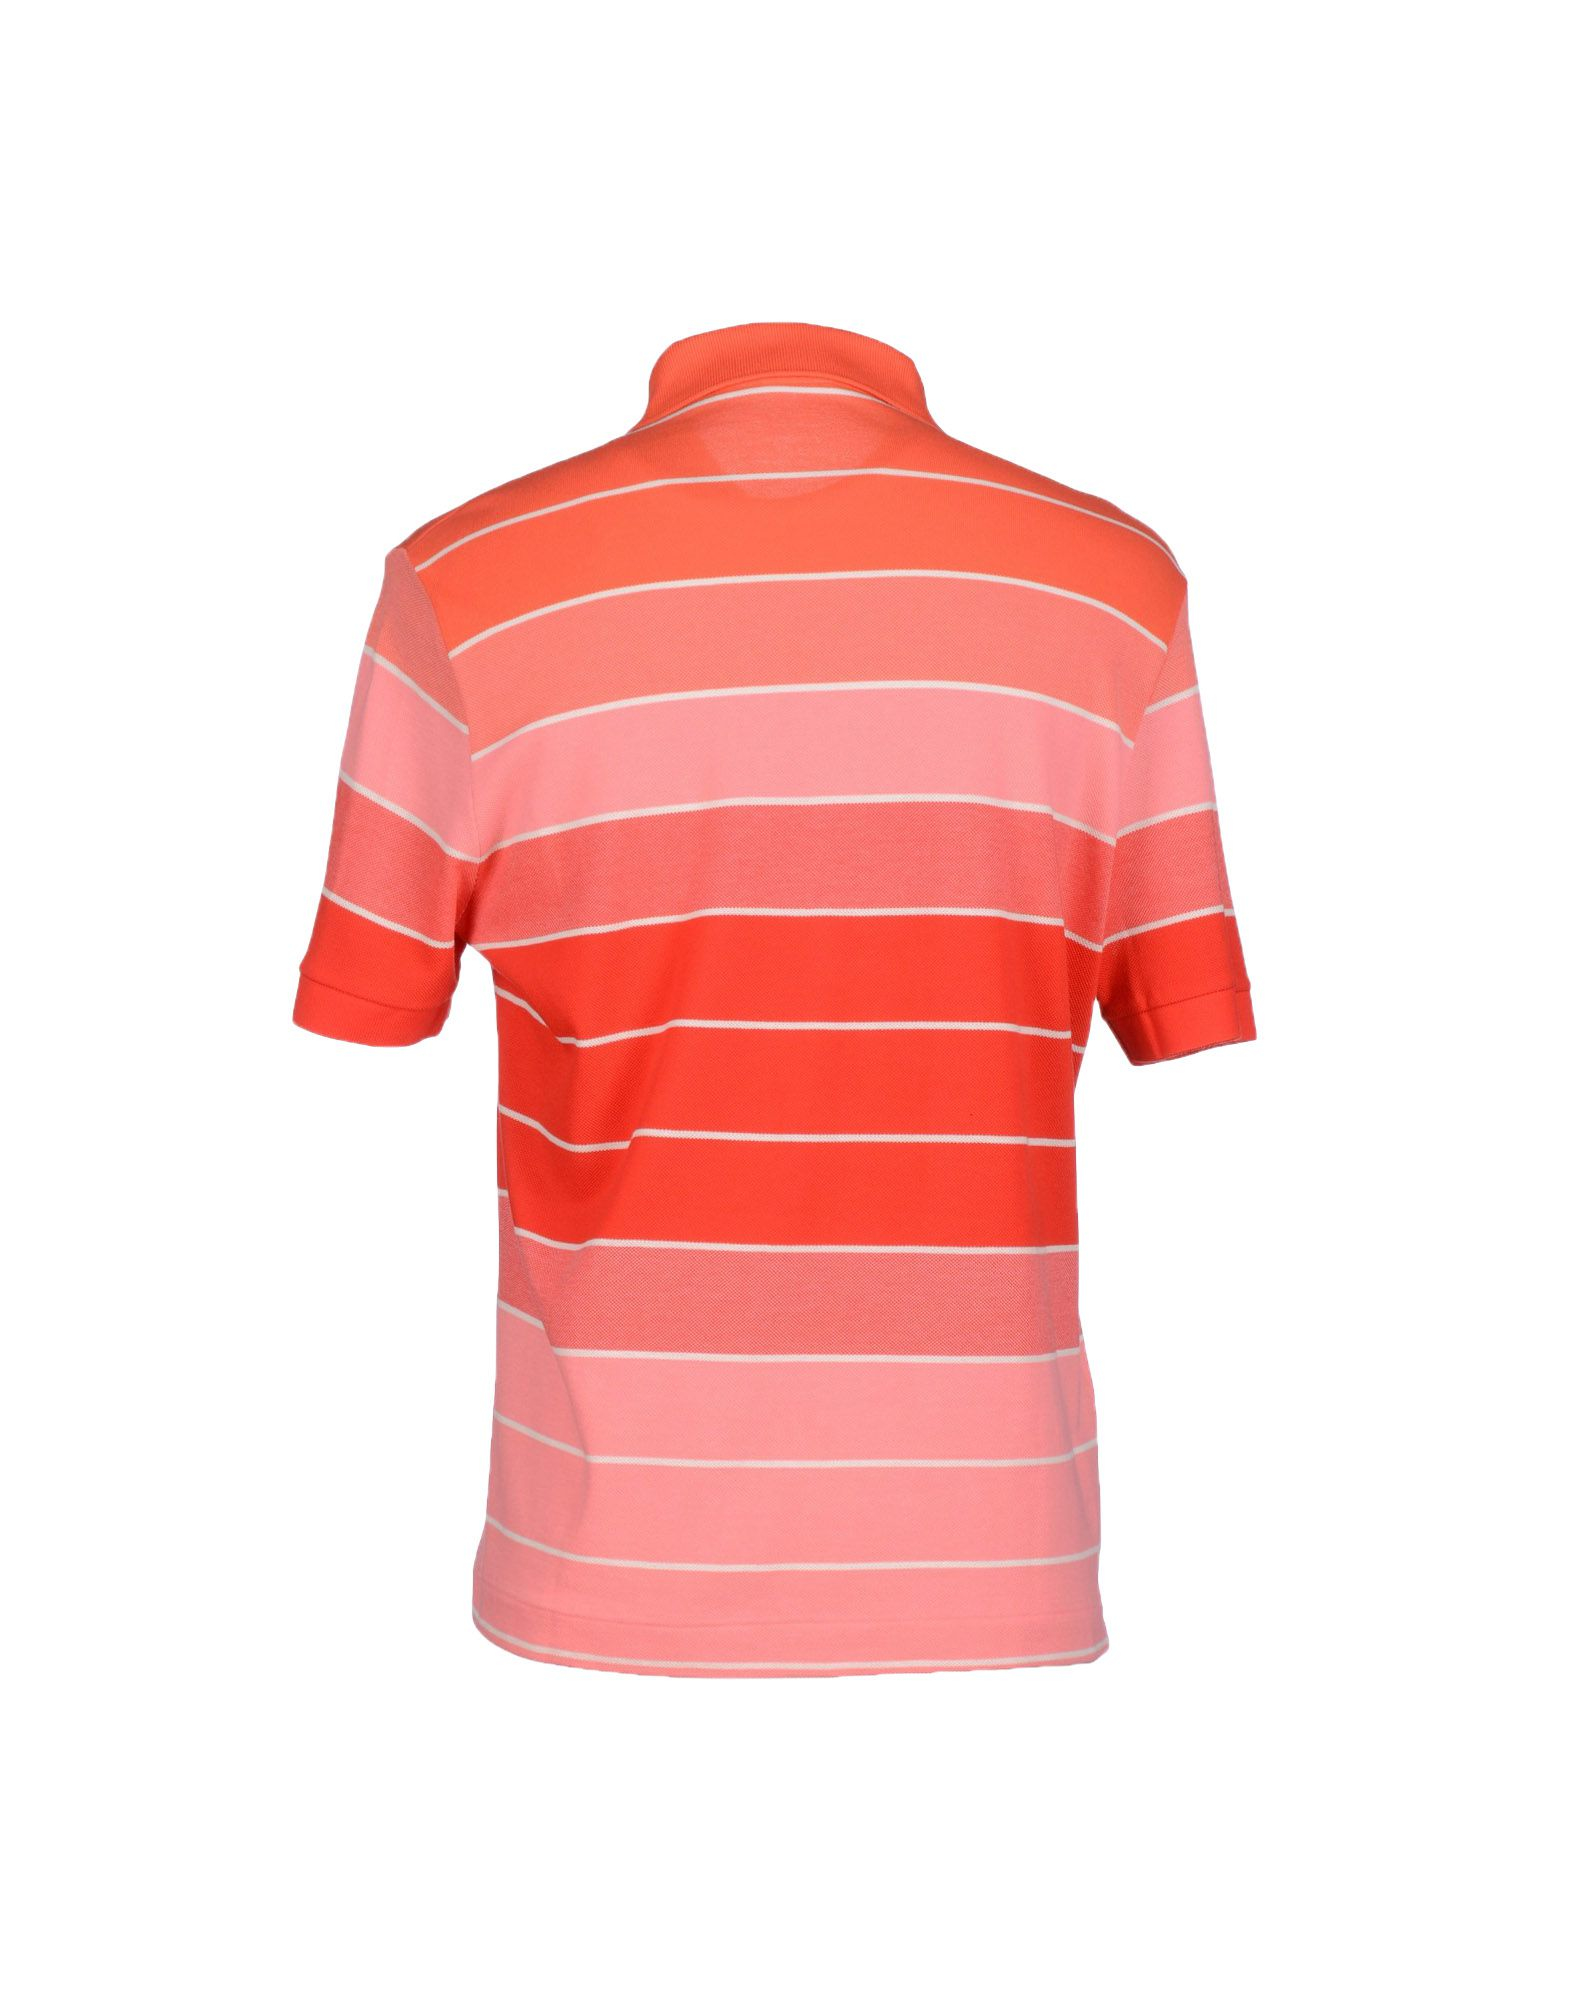 Lyst lacoste polo shirt in pink for men for Lacoste poloshirt weiay